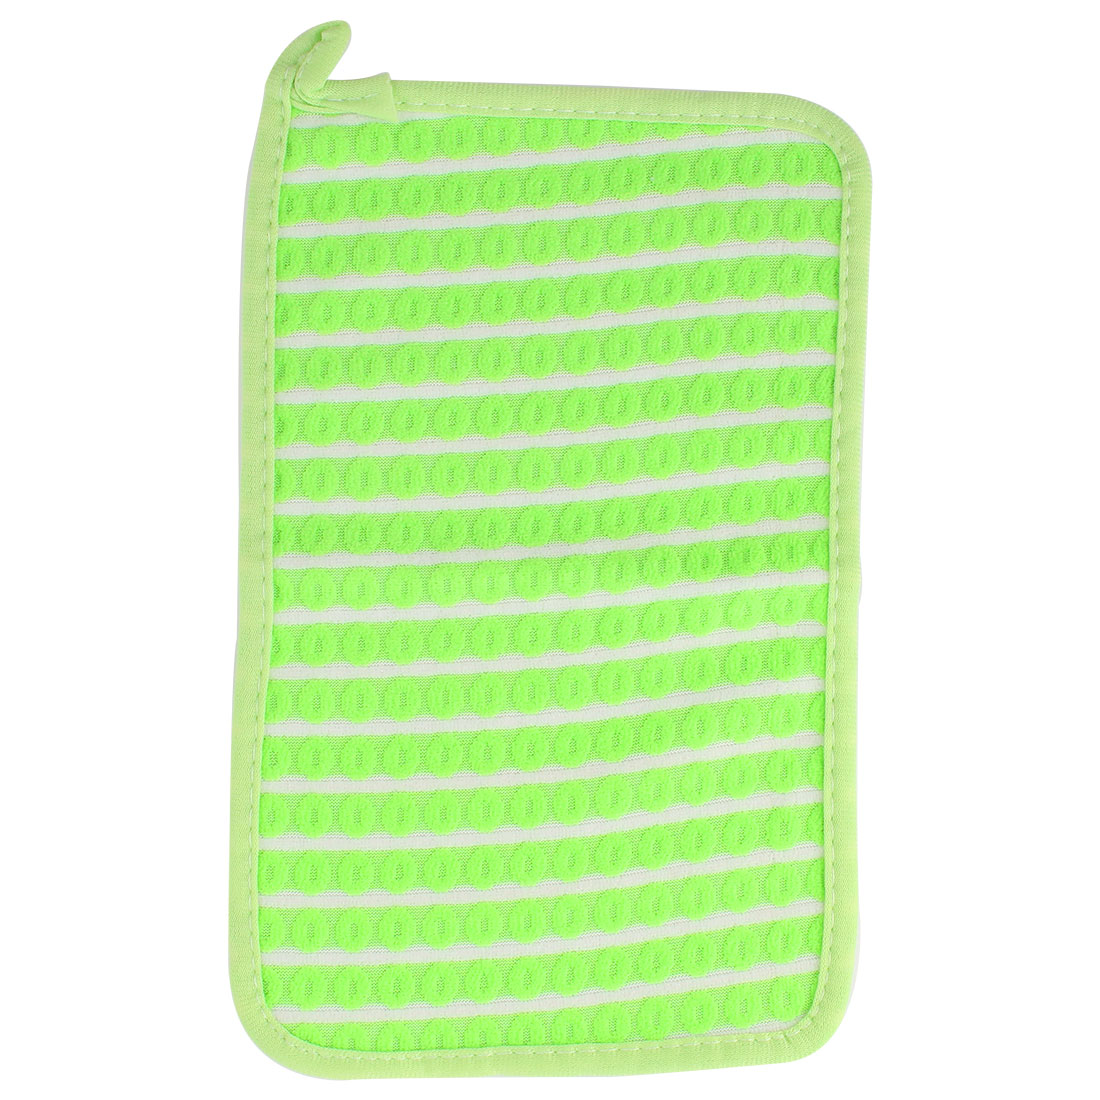 Home Kitchenware Rectangle Design Bowl Pot Dish Scrub Wiping Cleaning Cloth Green